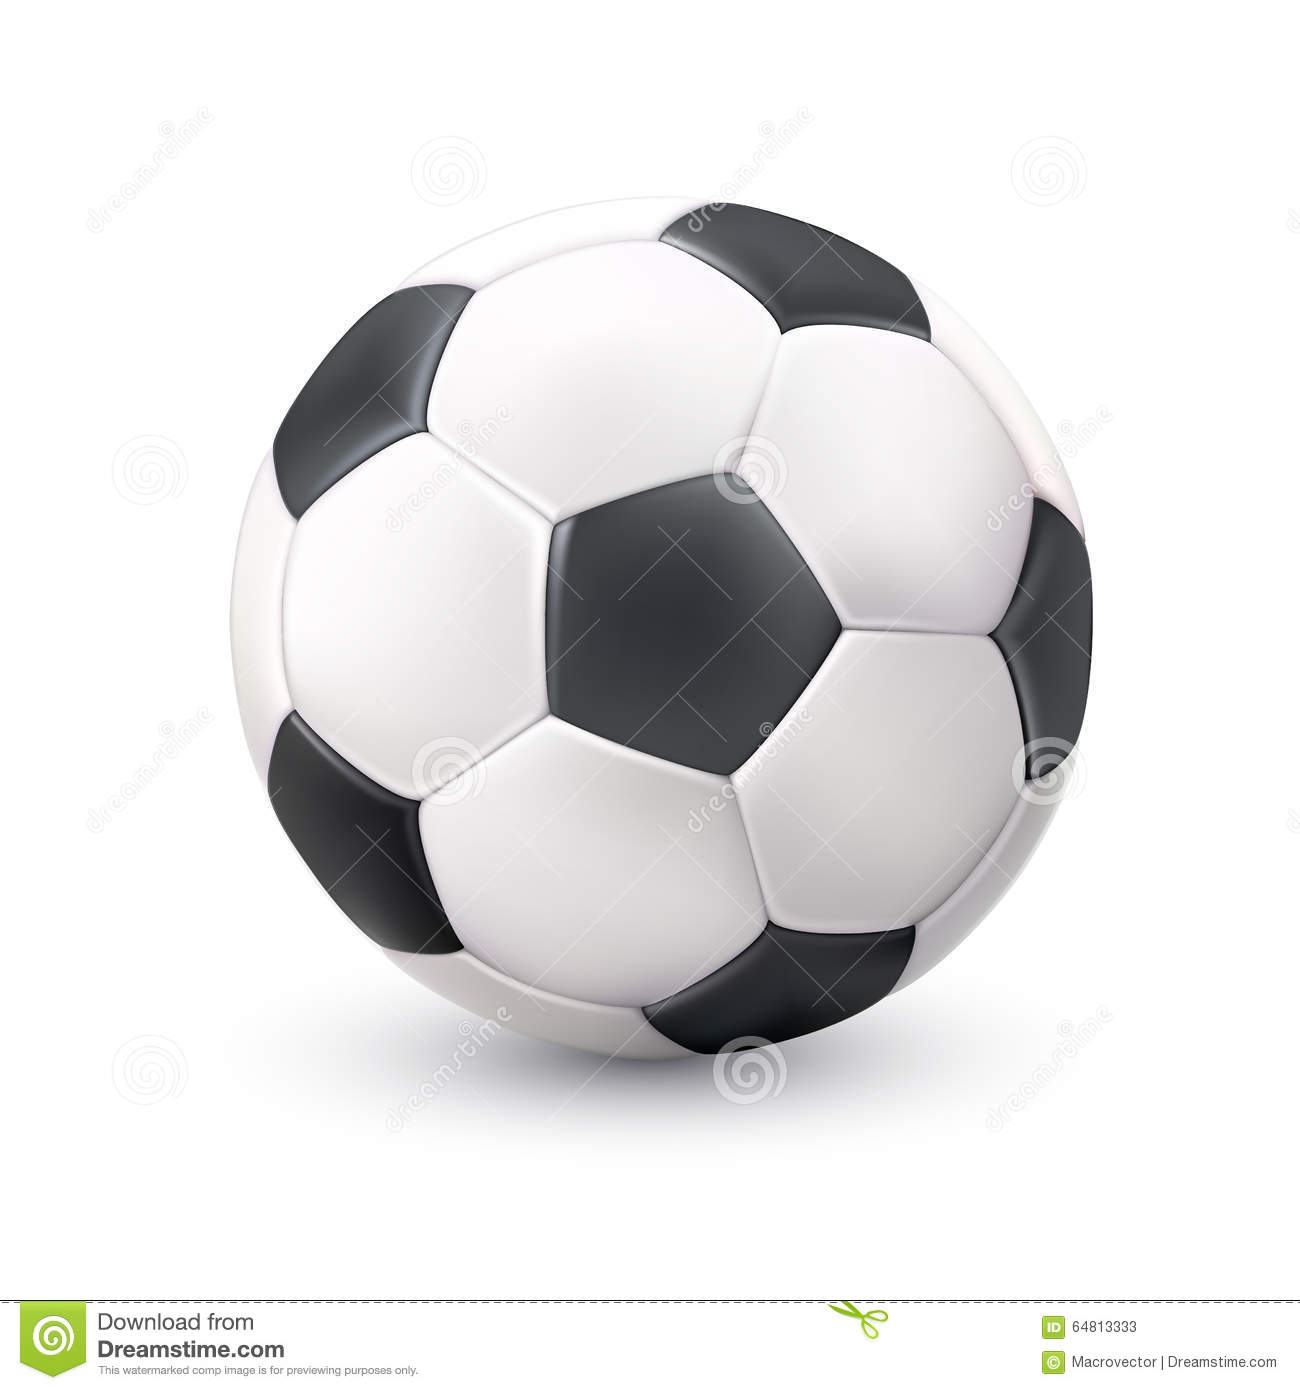 reflective essay on football soccer History women's soccer research essay title ix athletics policy  soccer, also  called football, is the fastest growing and most popular sport across the world.